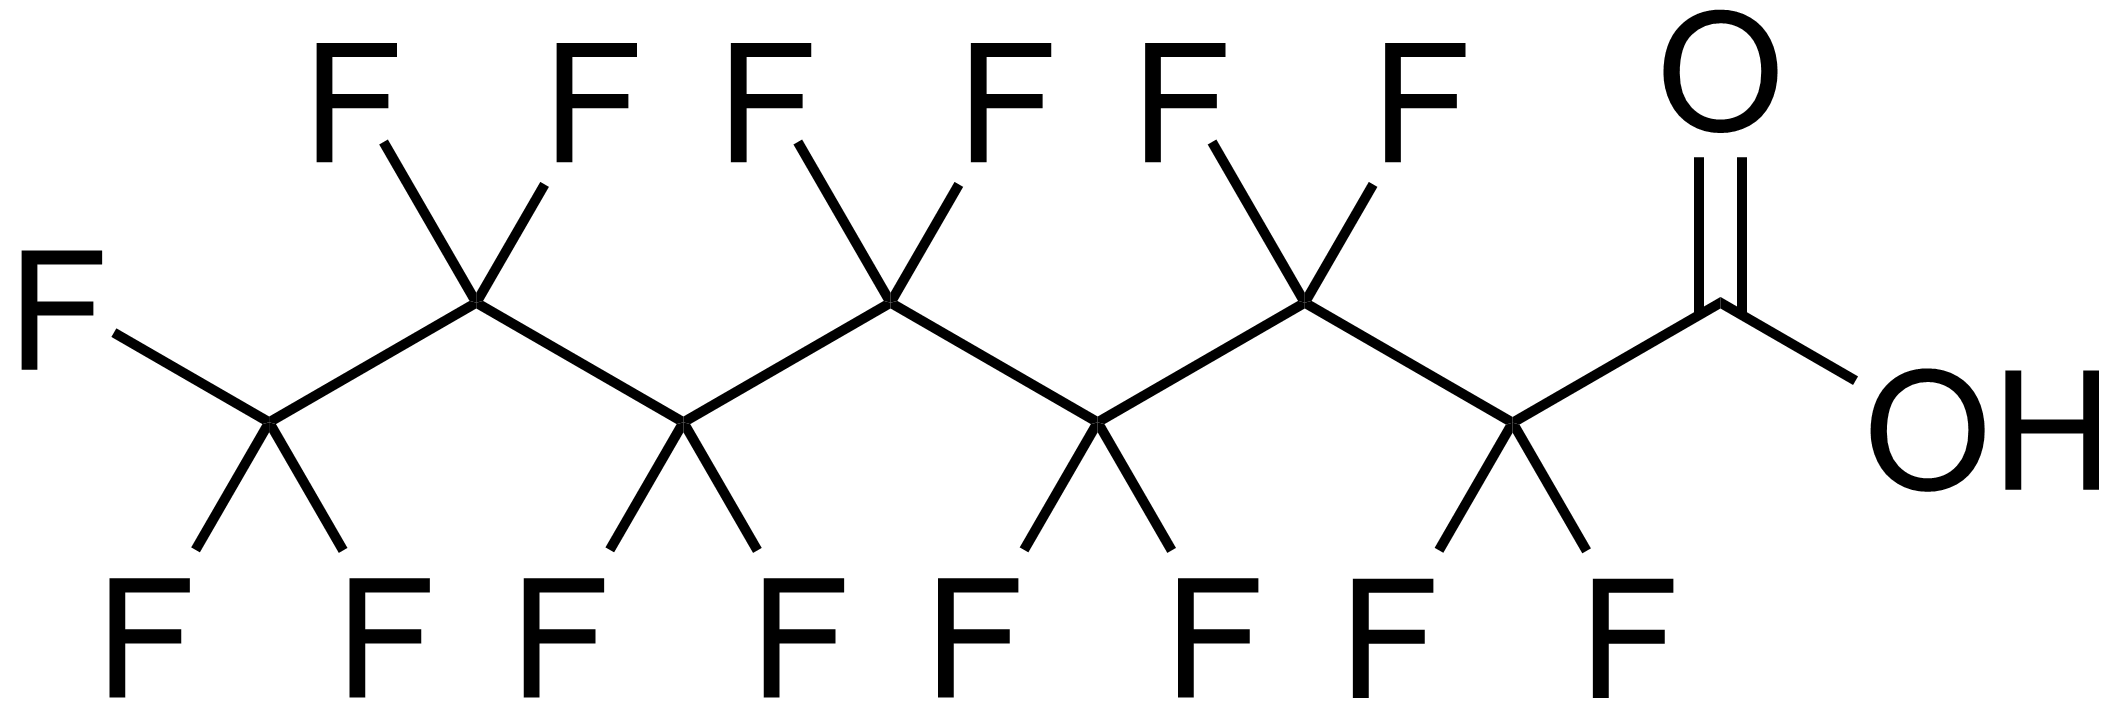 chemical structure of P F O A